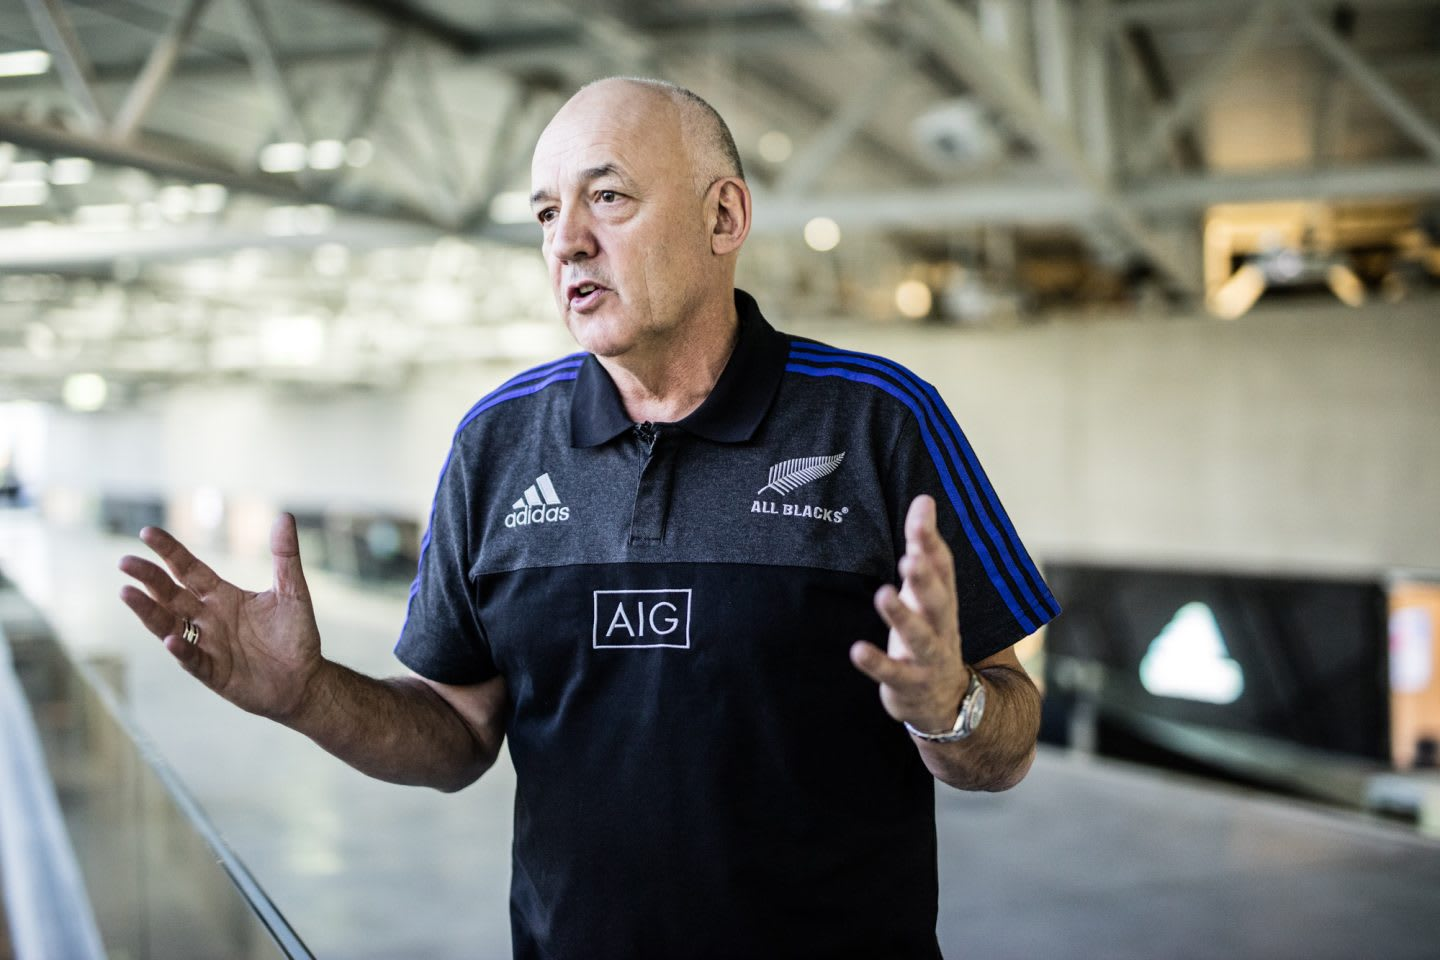 Man gesturing during interview with adidas All Blacks Mental Coach Gilbert Enoka talking mental strength vulnerability team spirit